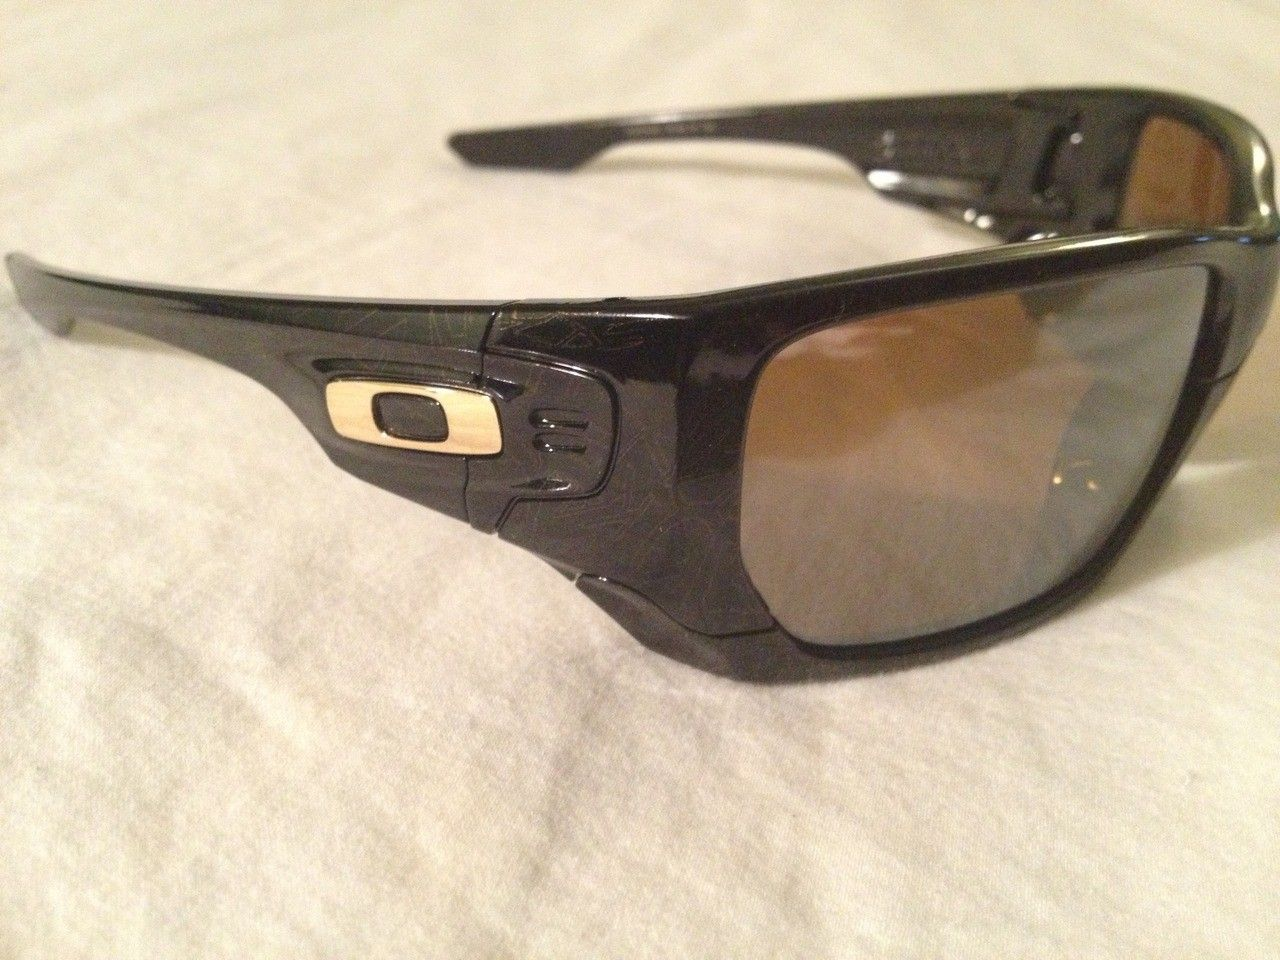 Or WTT Style Switch: Polished Black W. Gold Text - tumblr_mt937fqJEX1rbptugo1_1280.jpg